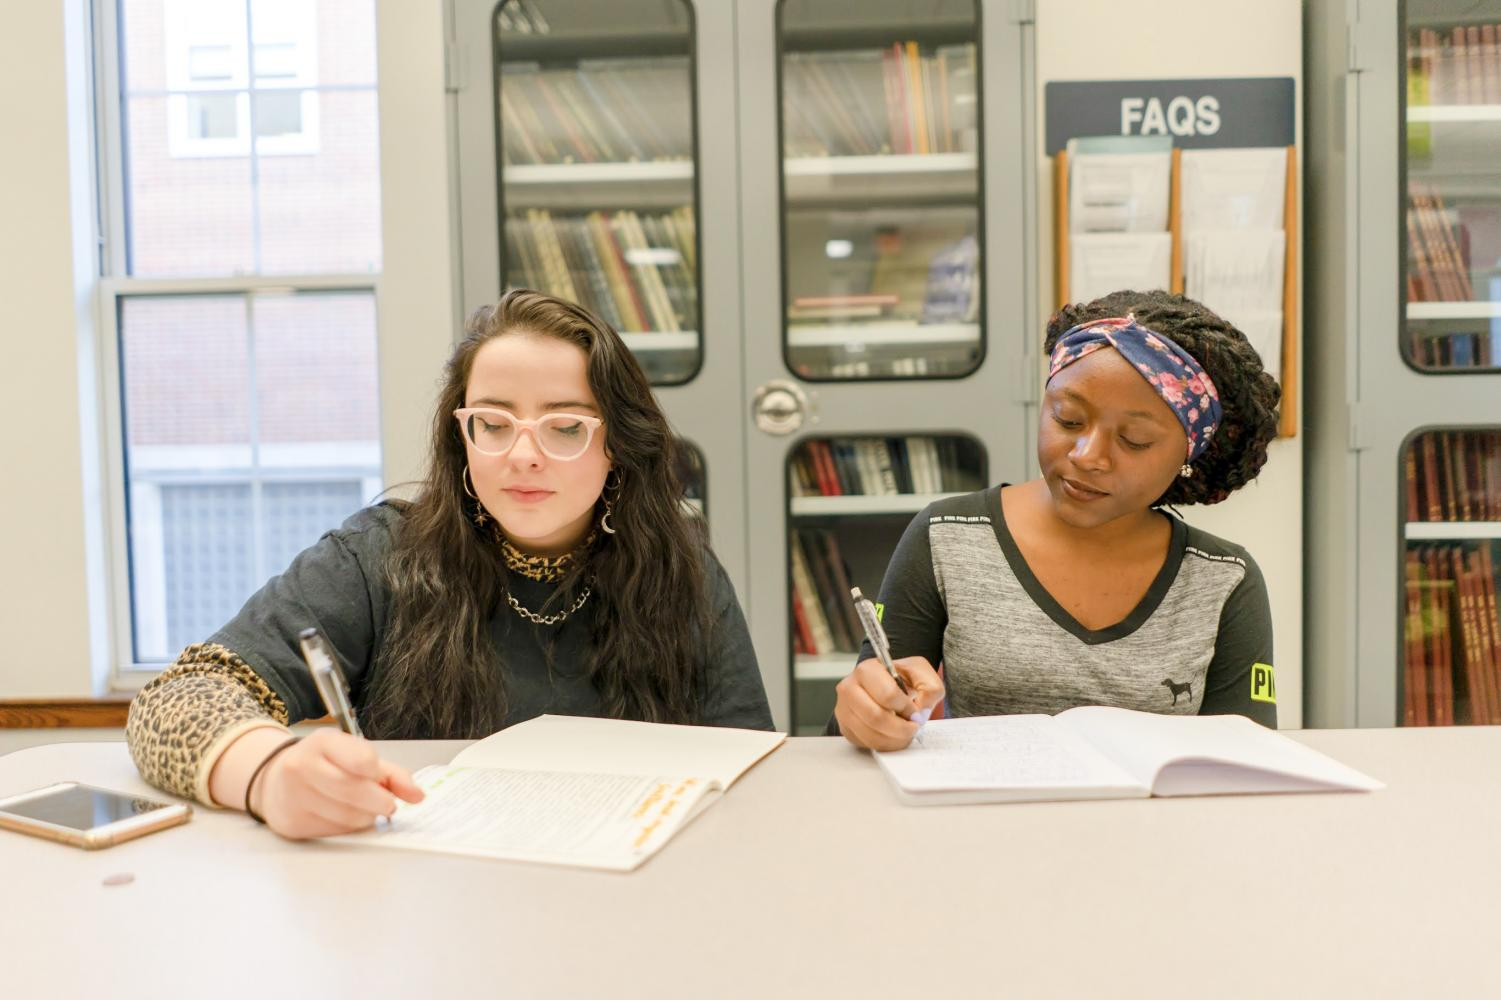 Seniors Isabella Moros Camargo and Konah Brownell diligently complete school work.  Both have concerns about applying to college as an immigrant.